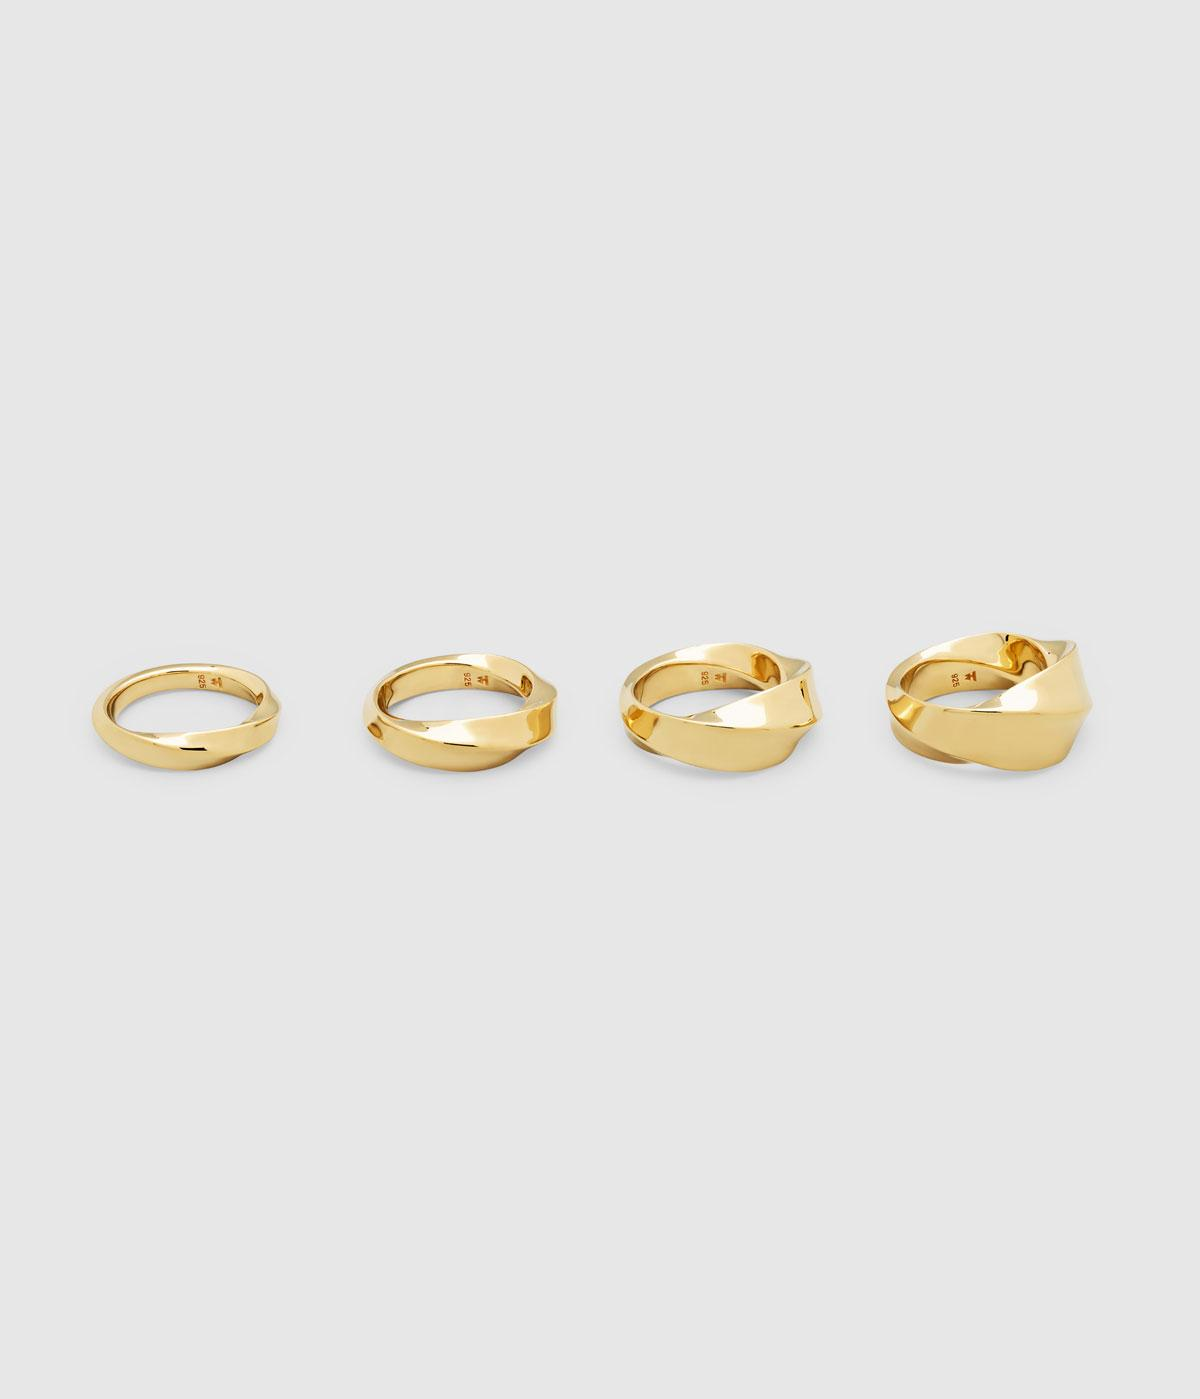 Line of gold rings against a grey background